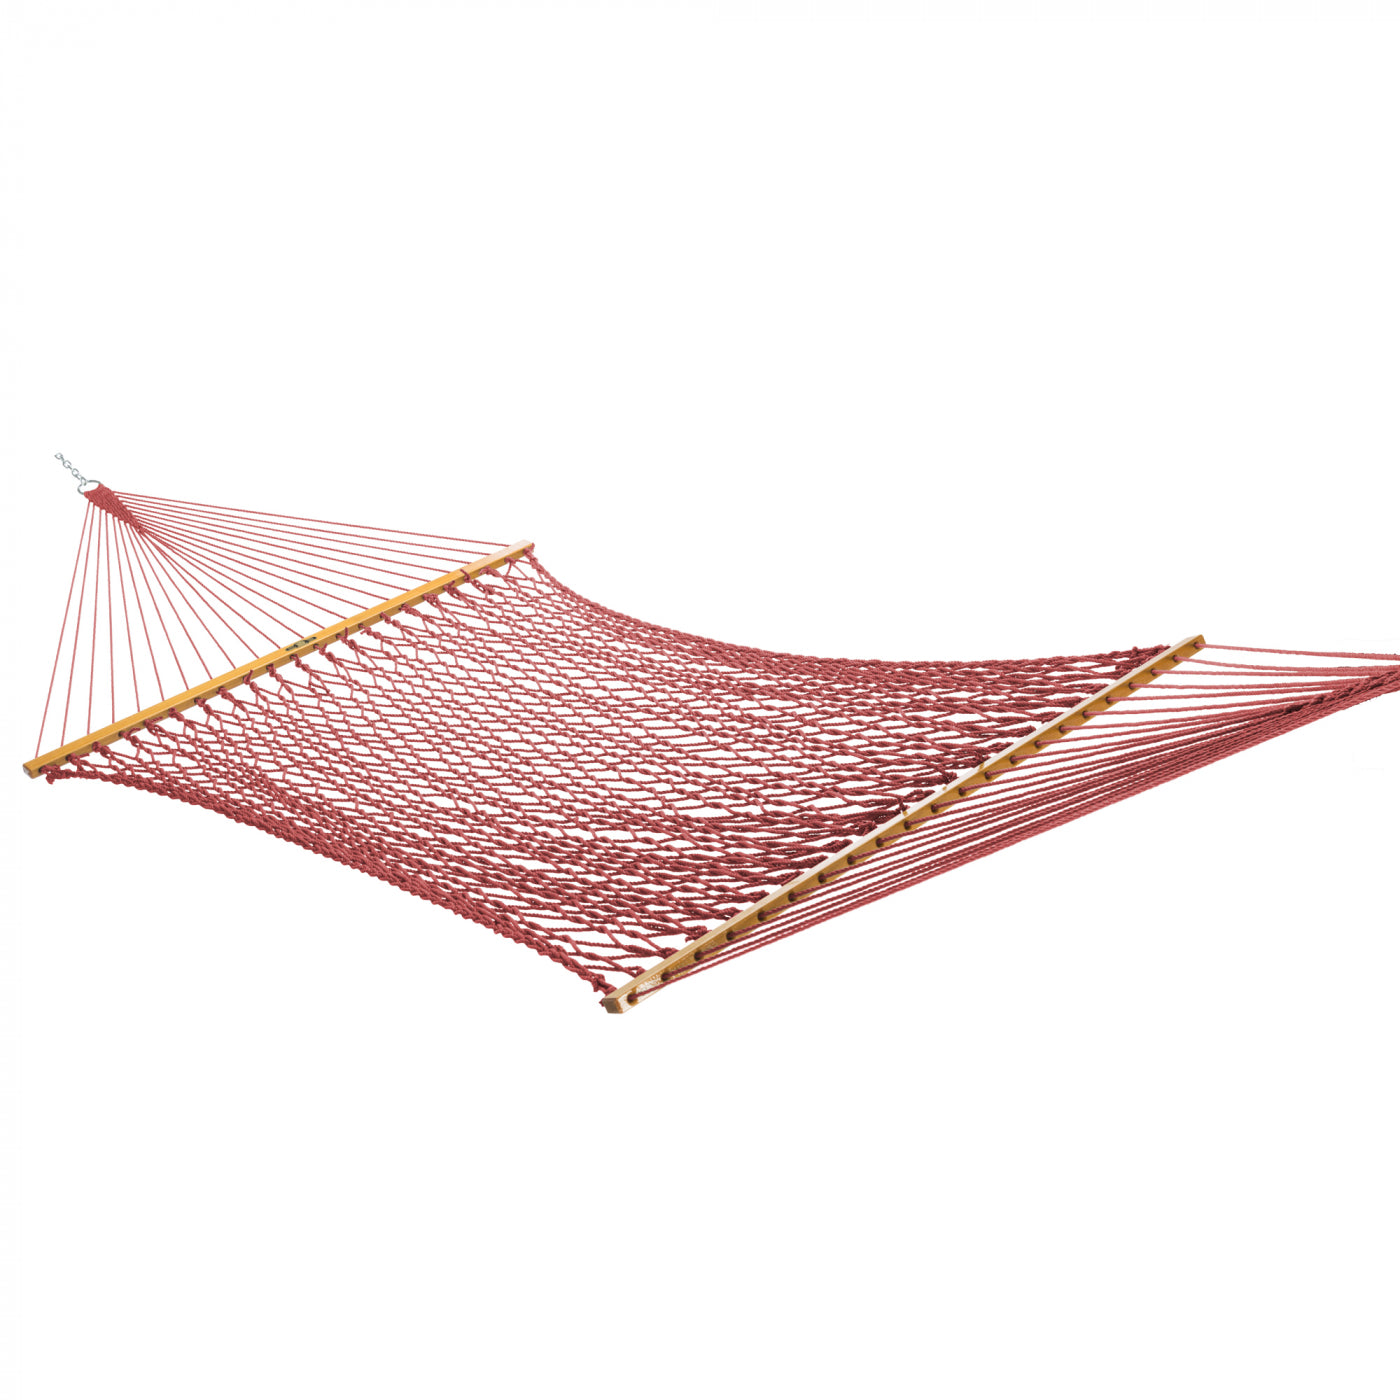 Large Original DuraCord Rope Hammock